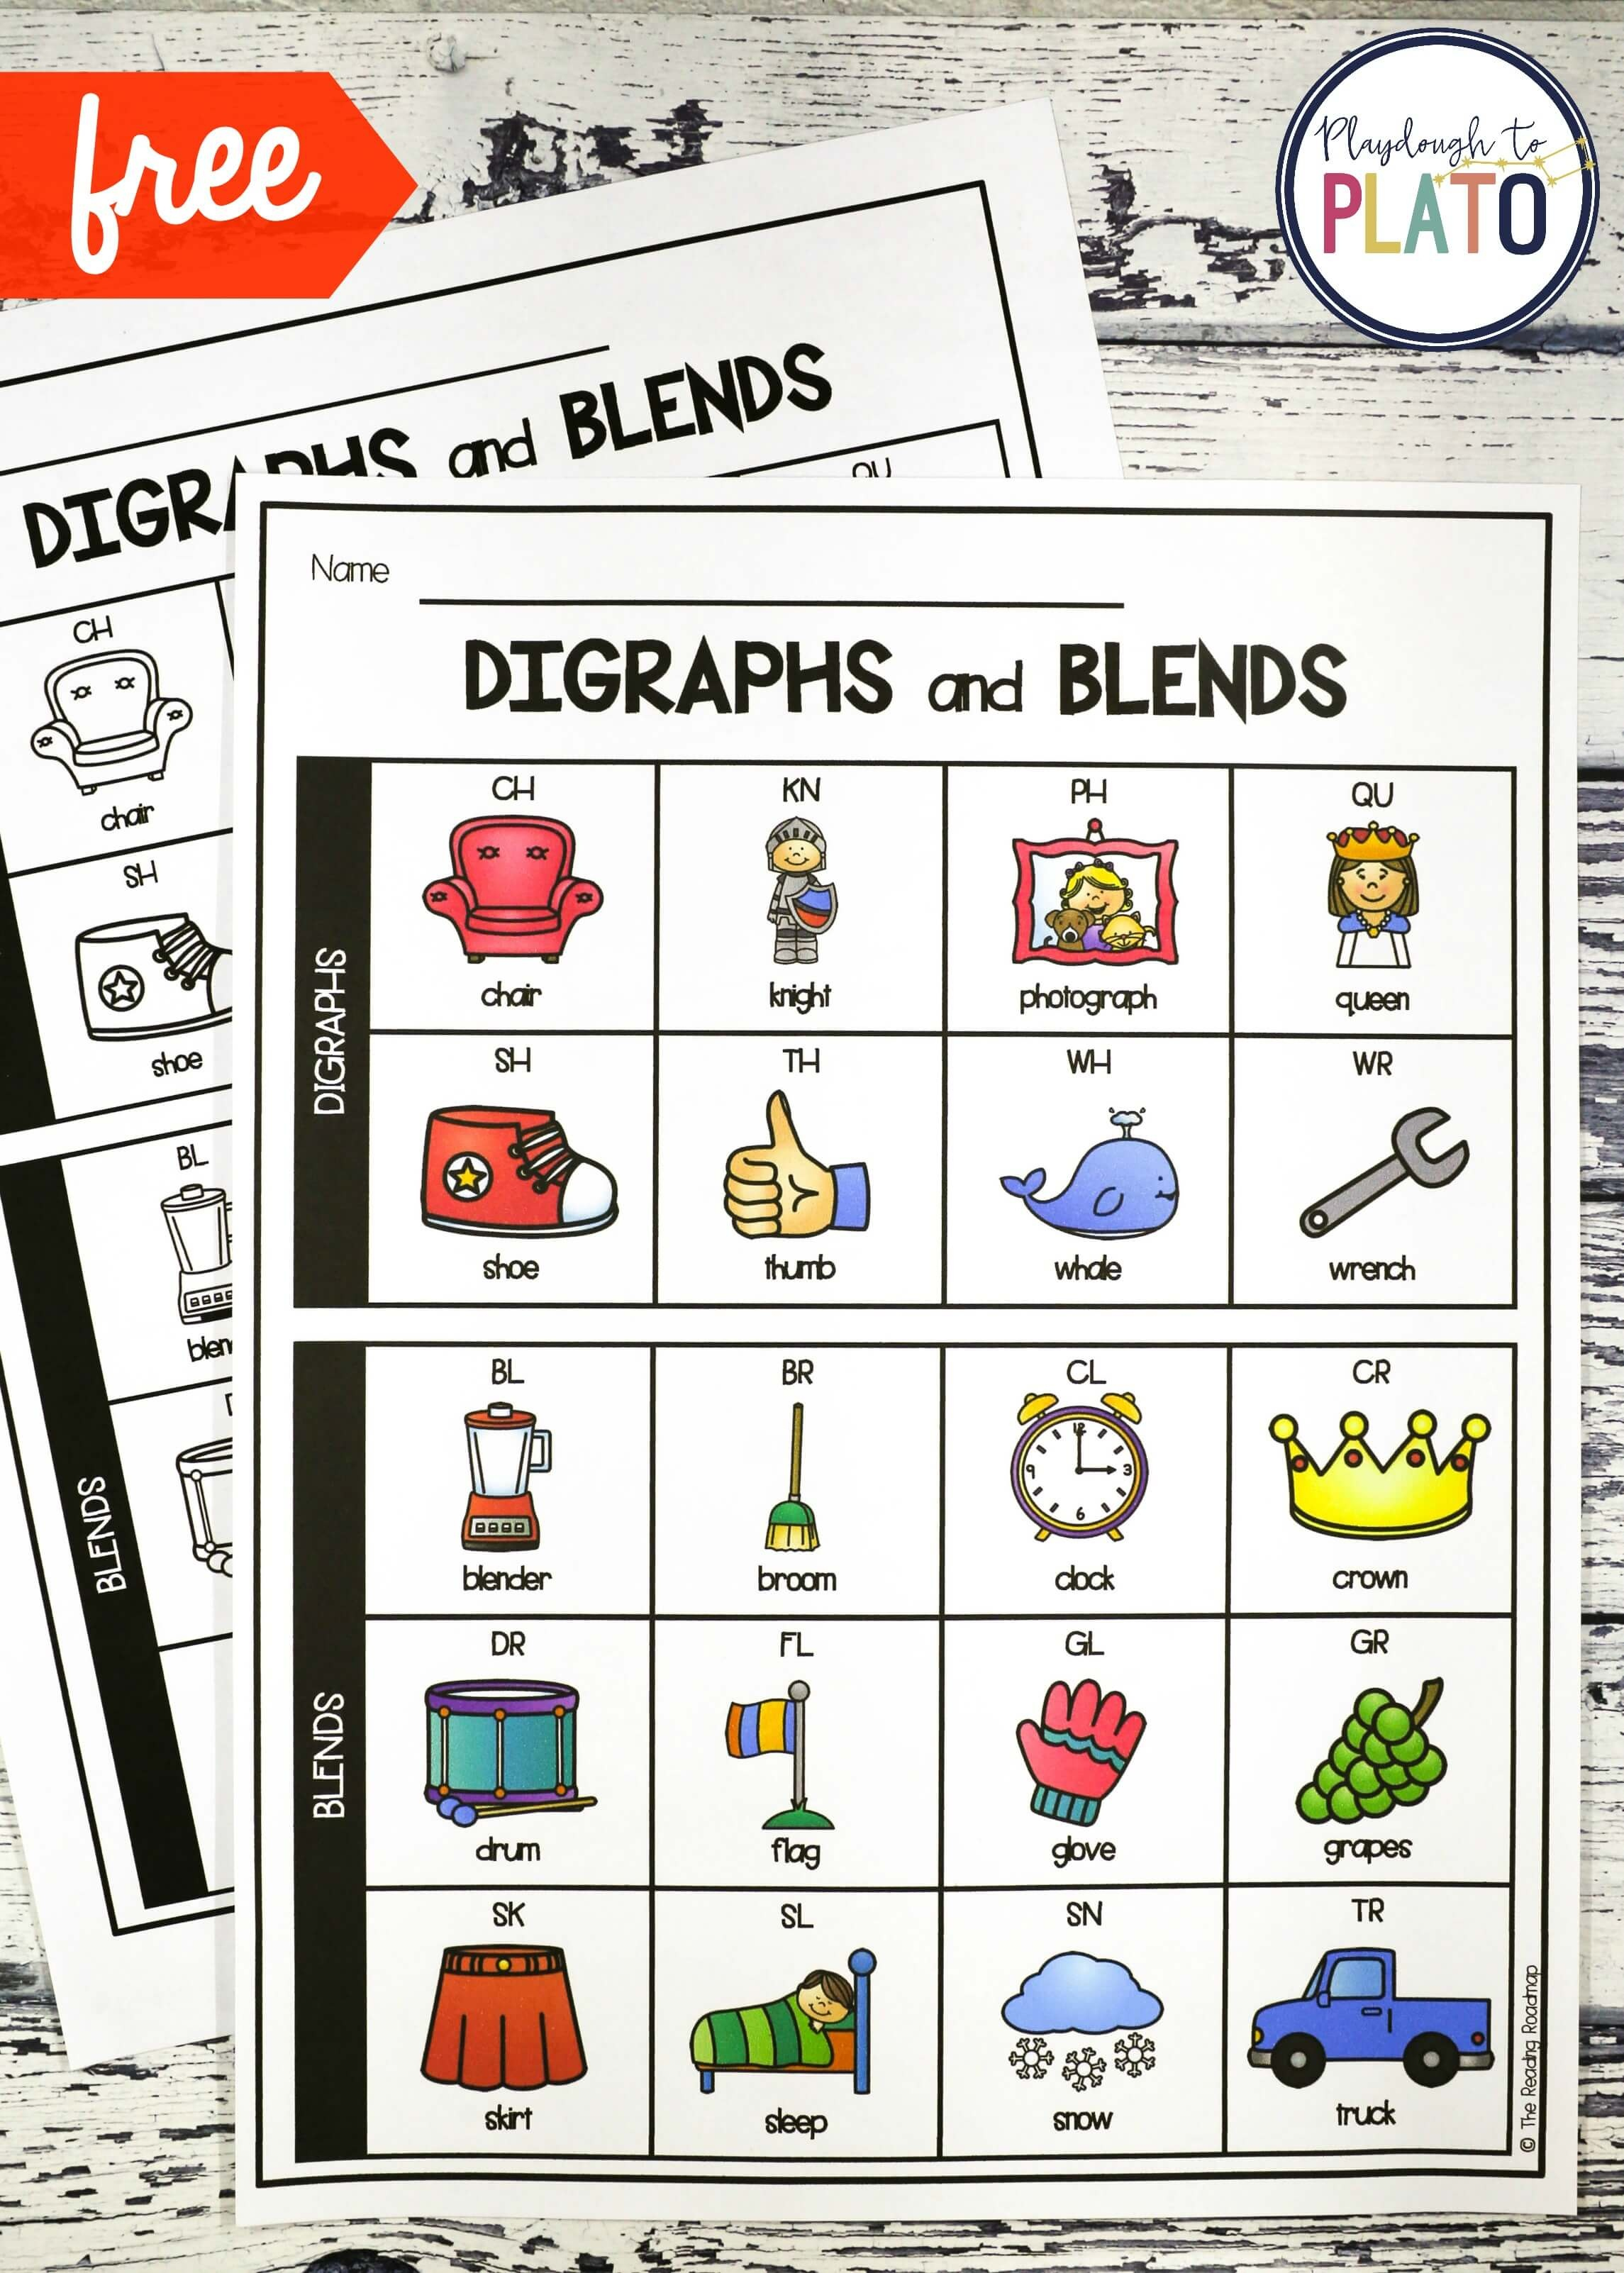 Digraph And Blend Chart - Playdough To Plato - Free Printable Ch Digraph Worksheets